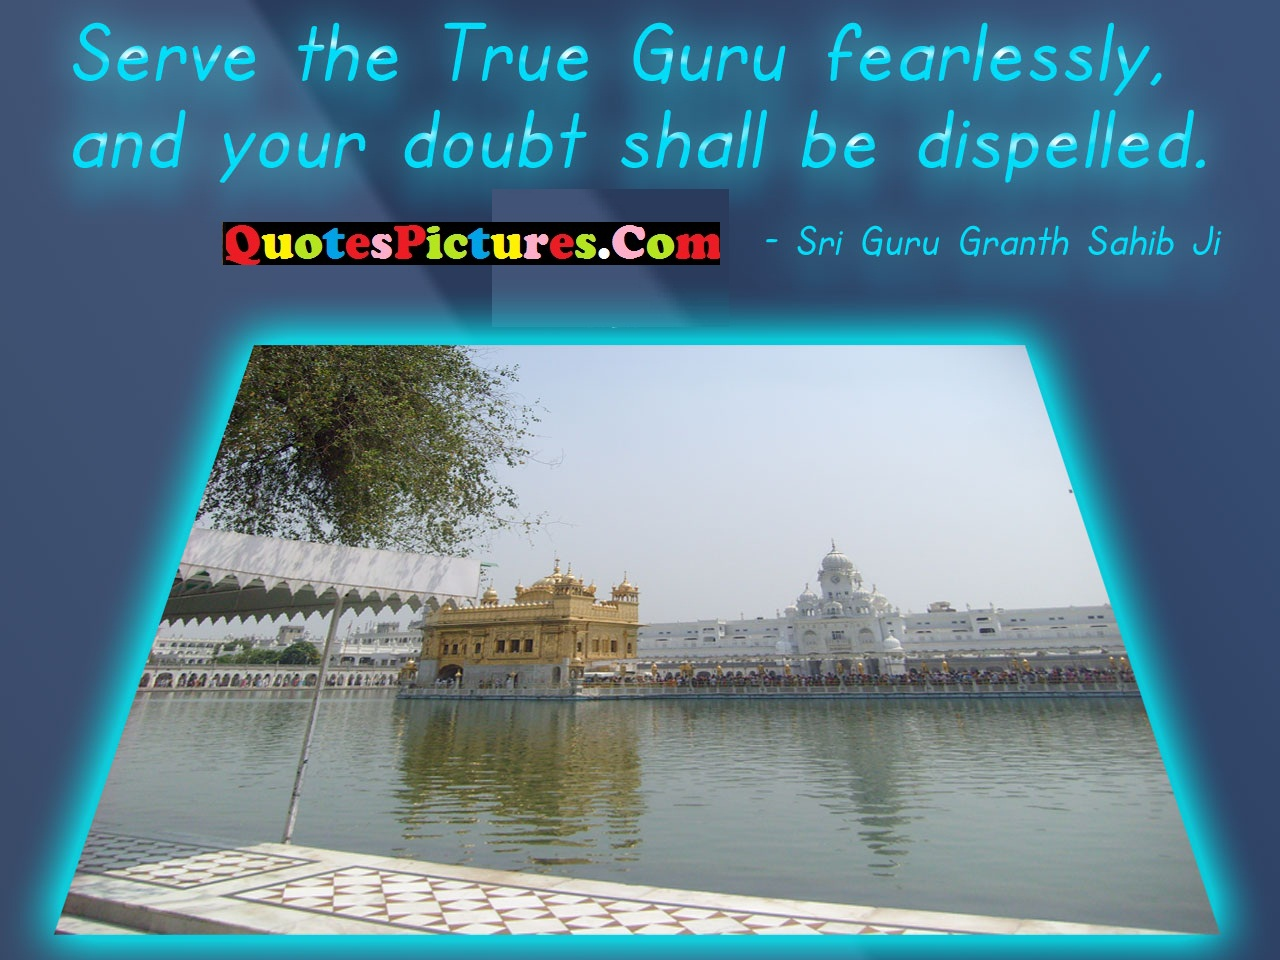 Inspirational Sikhism Quote - Serve The True Guru Fearlessly, And Your Doubt Shall Be Dispelled.